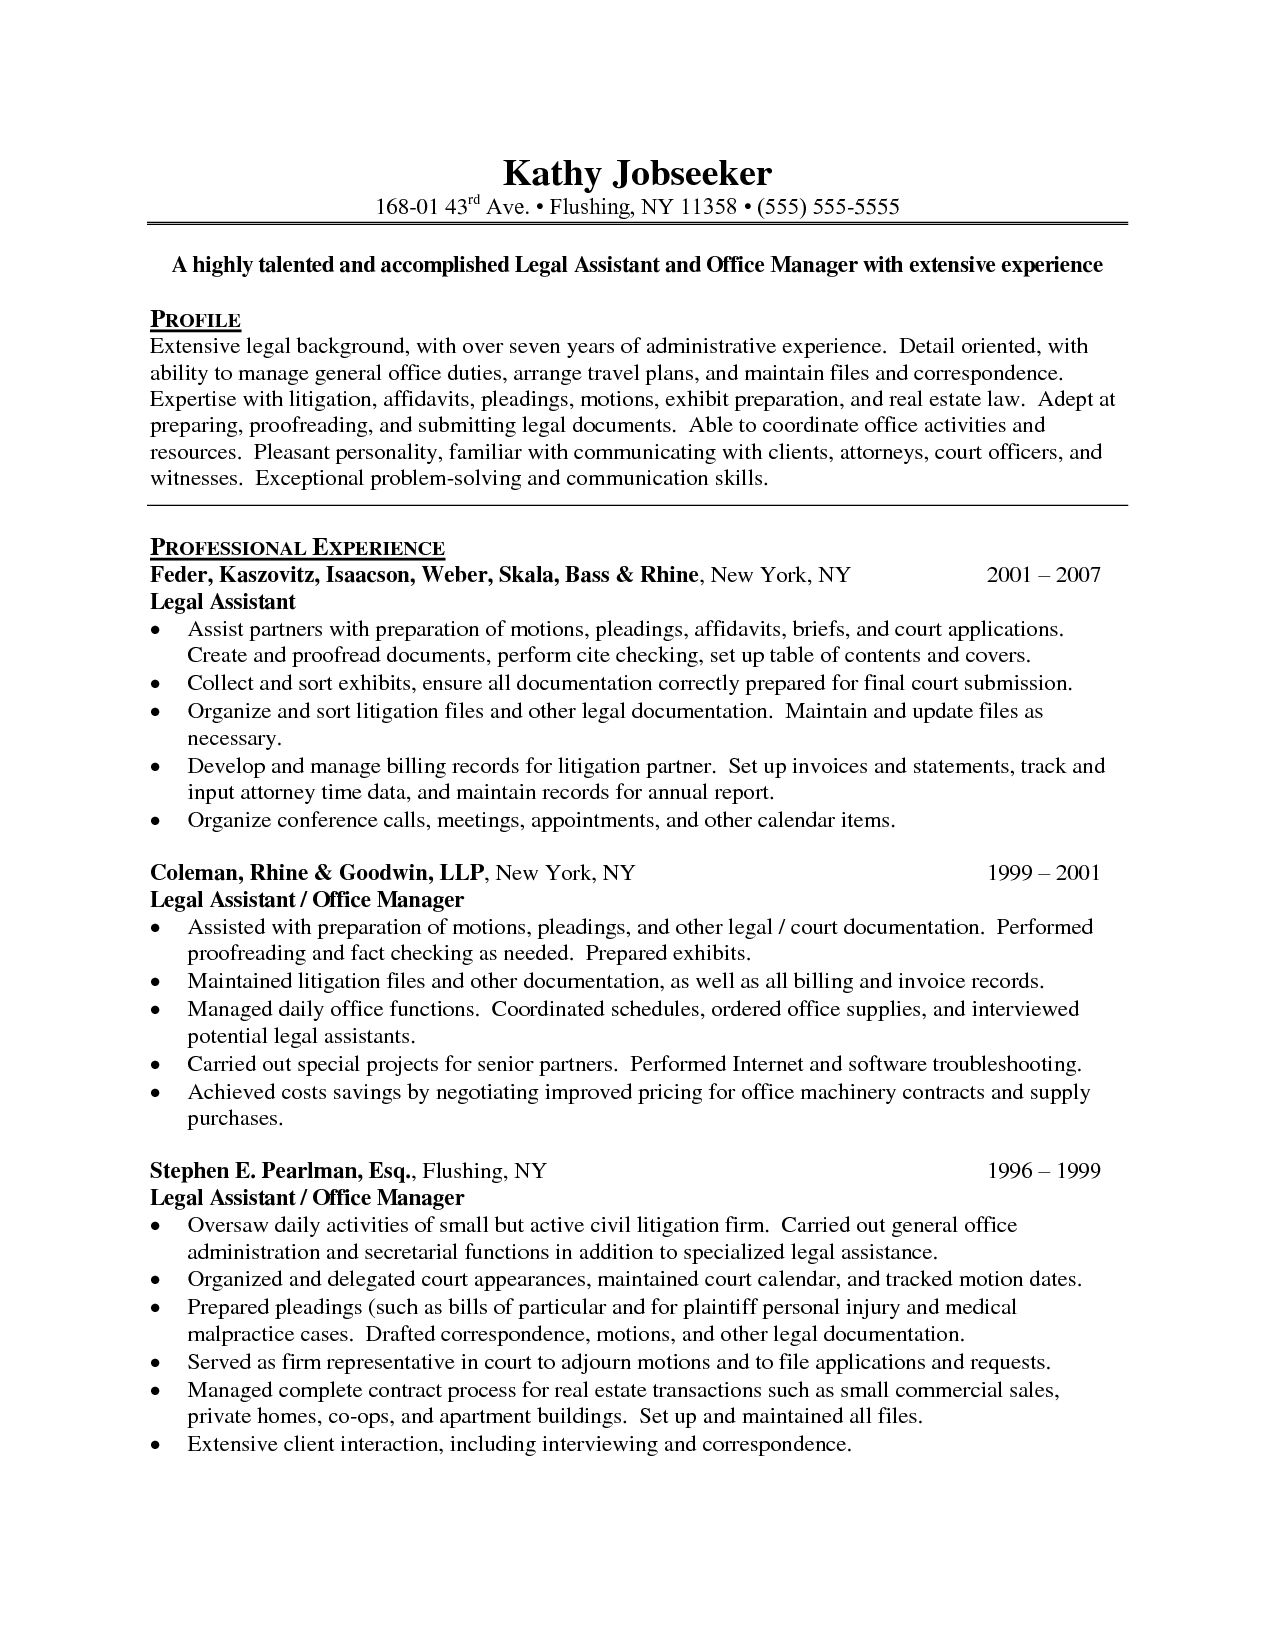 Resume Words For Legal Resume Specialist S Opinion Good Objective For Resume Resume Words Resume Examples